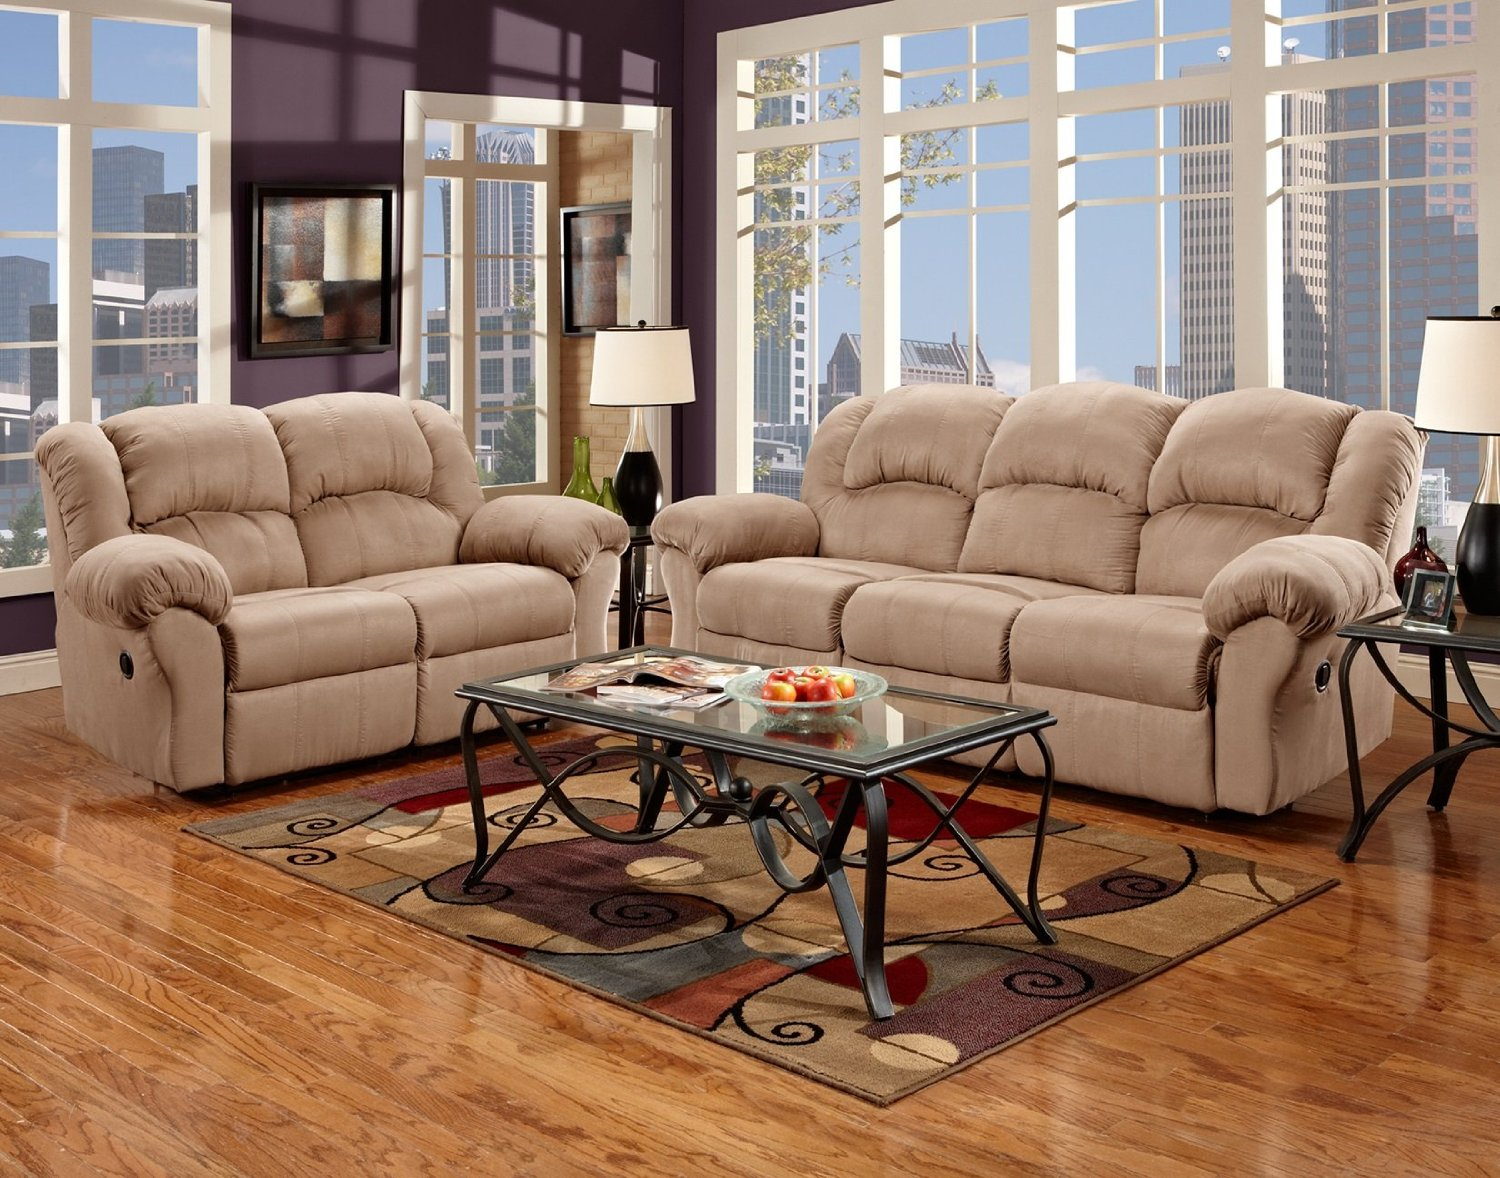 Roundhill Furniture Sensation Microfiber Dual Reclining Sofa Loveseat Set Camel Tan